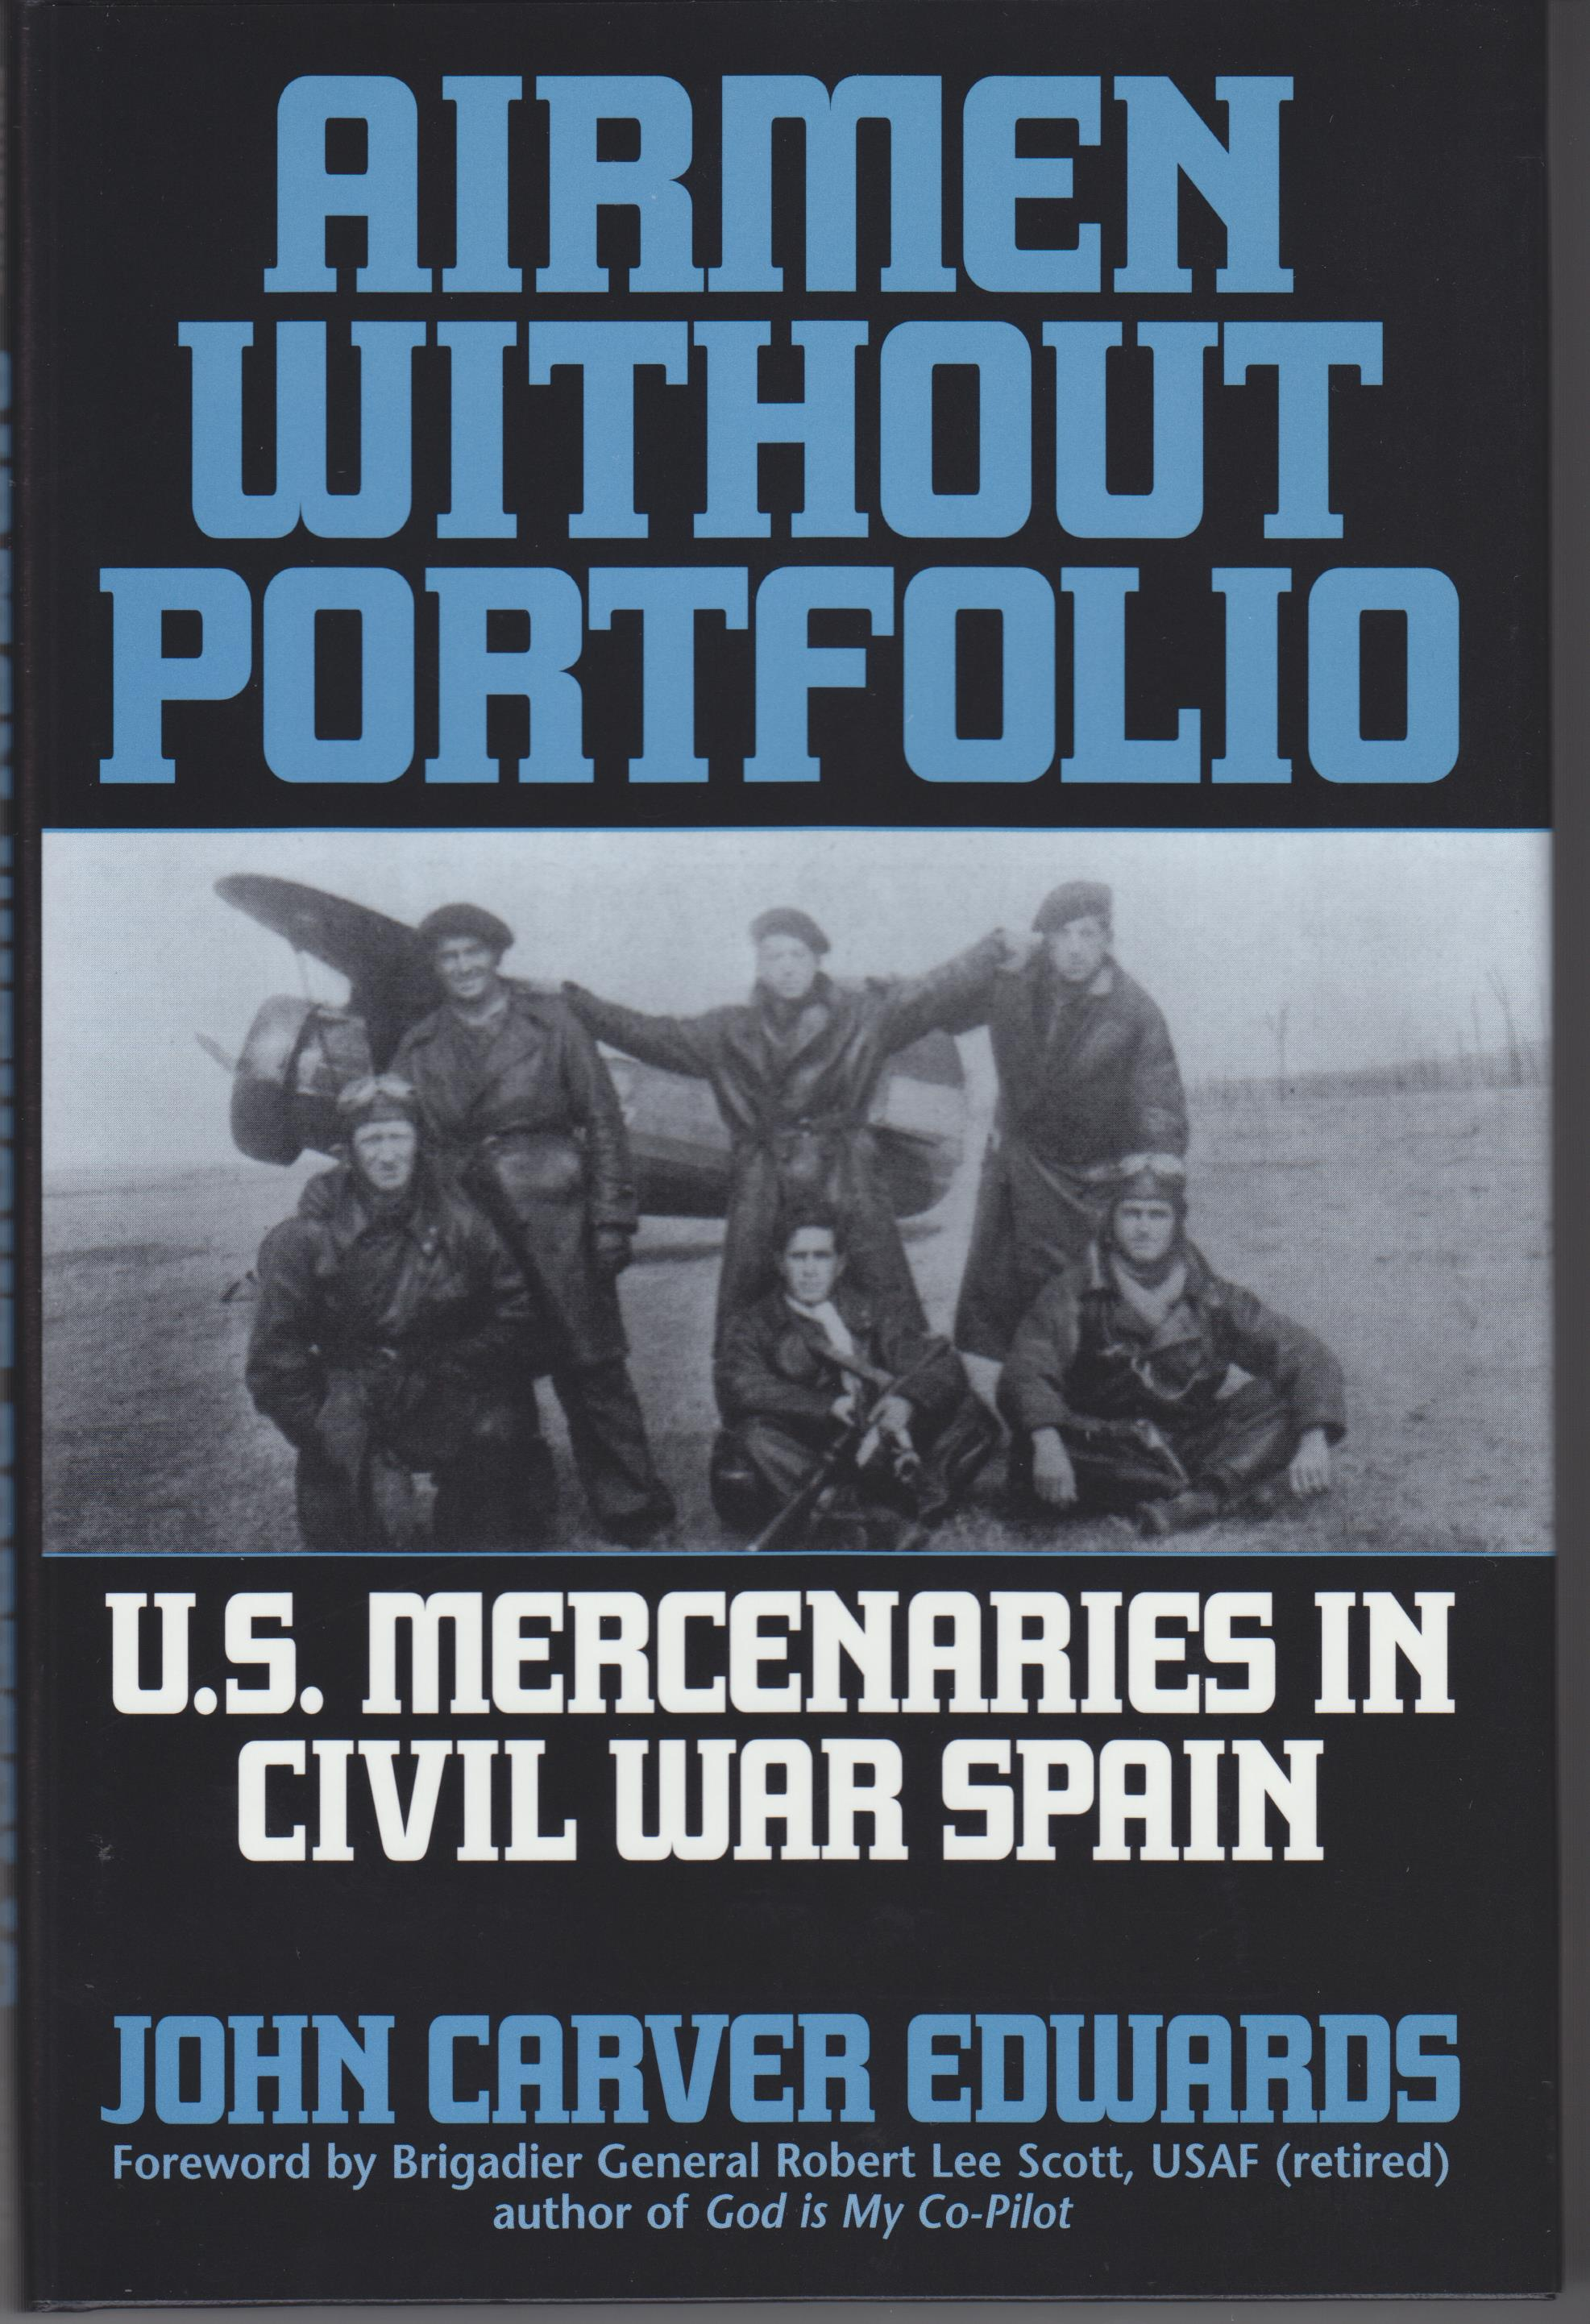 Image for Airmen without Portfolio. U.S. Mercenaries in Civil War Spain